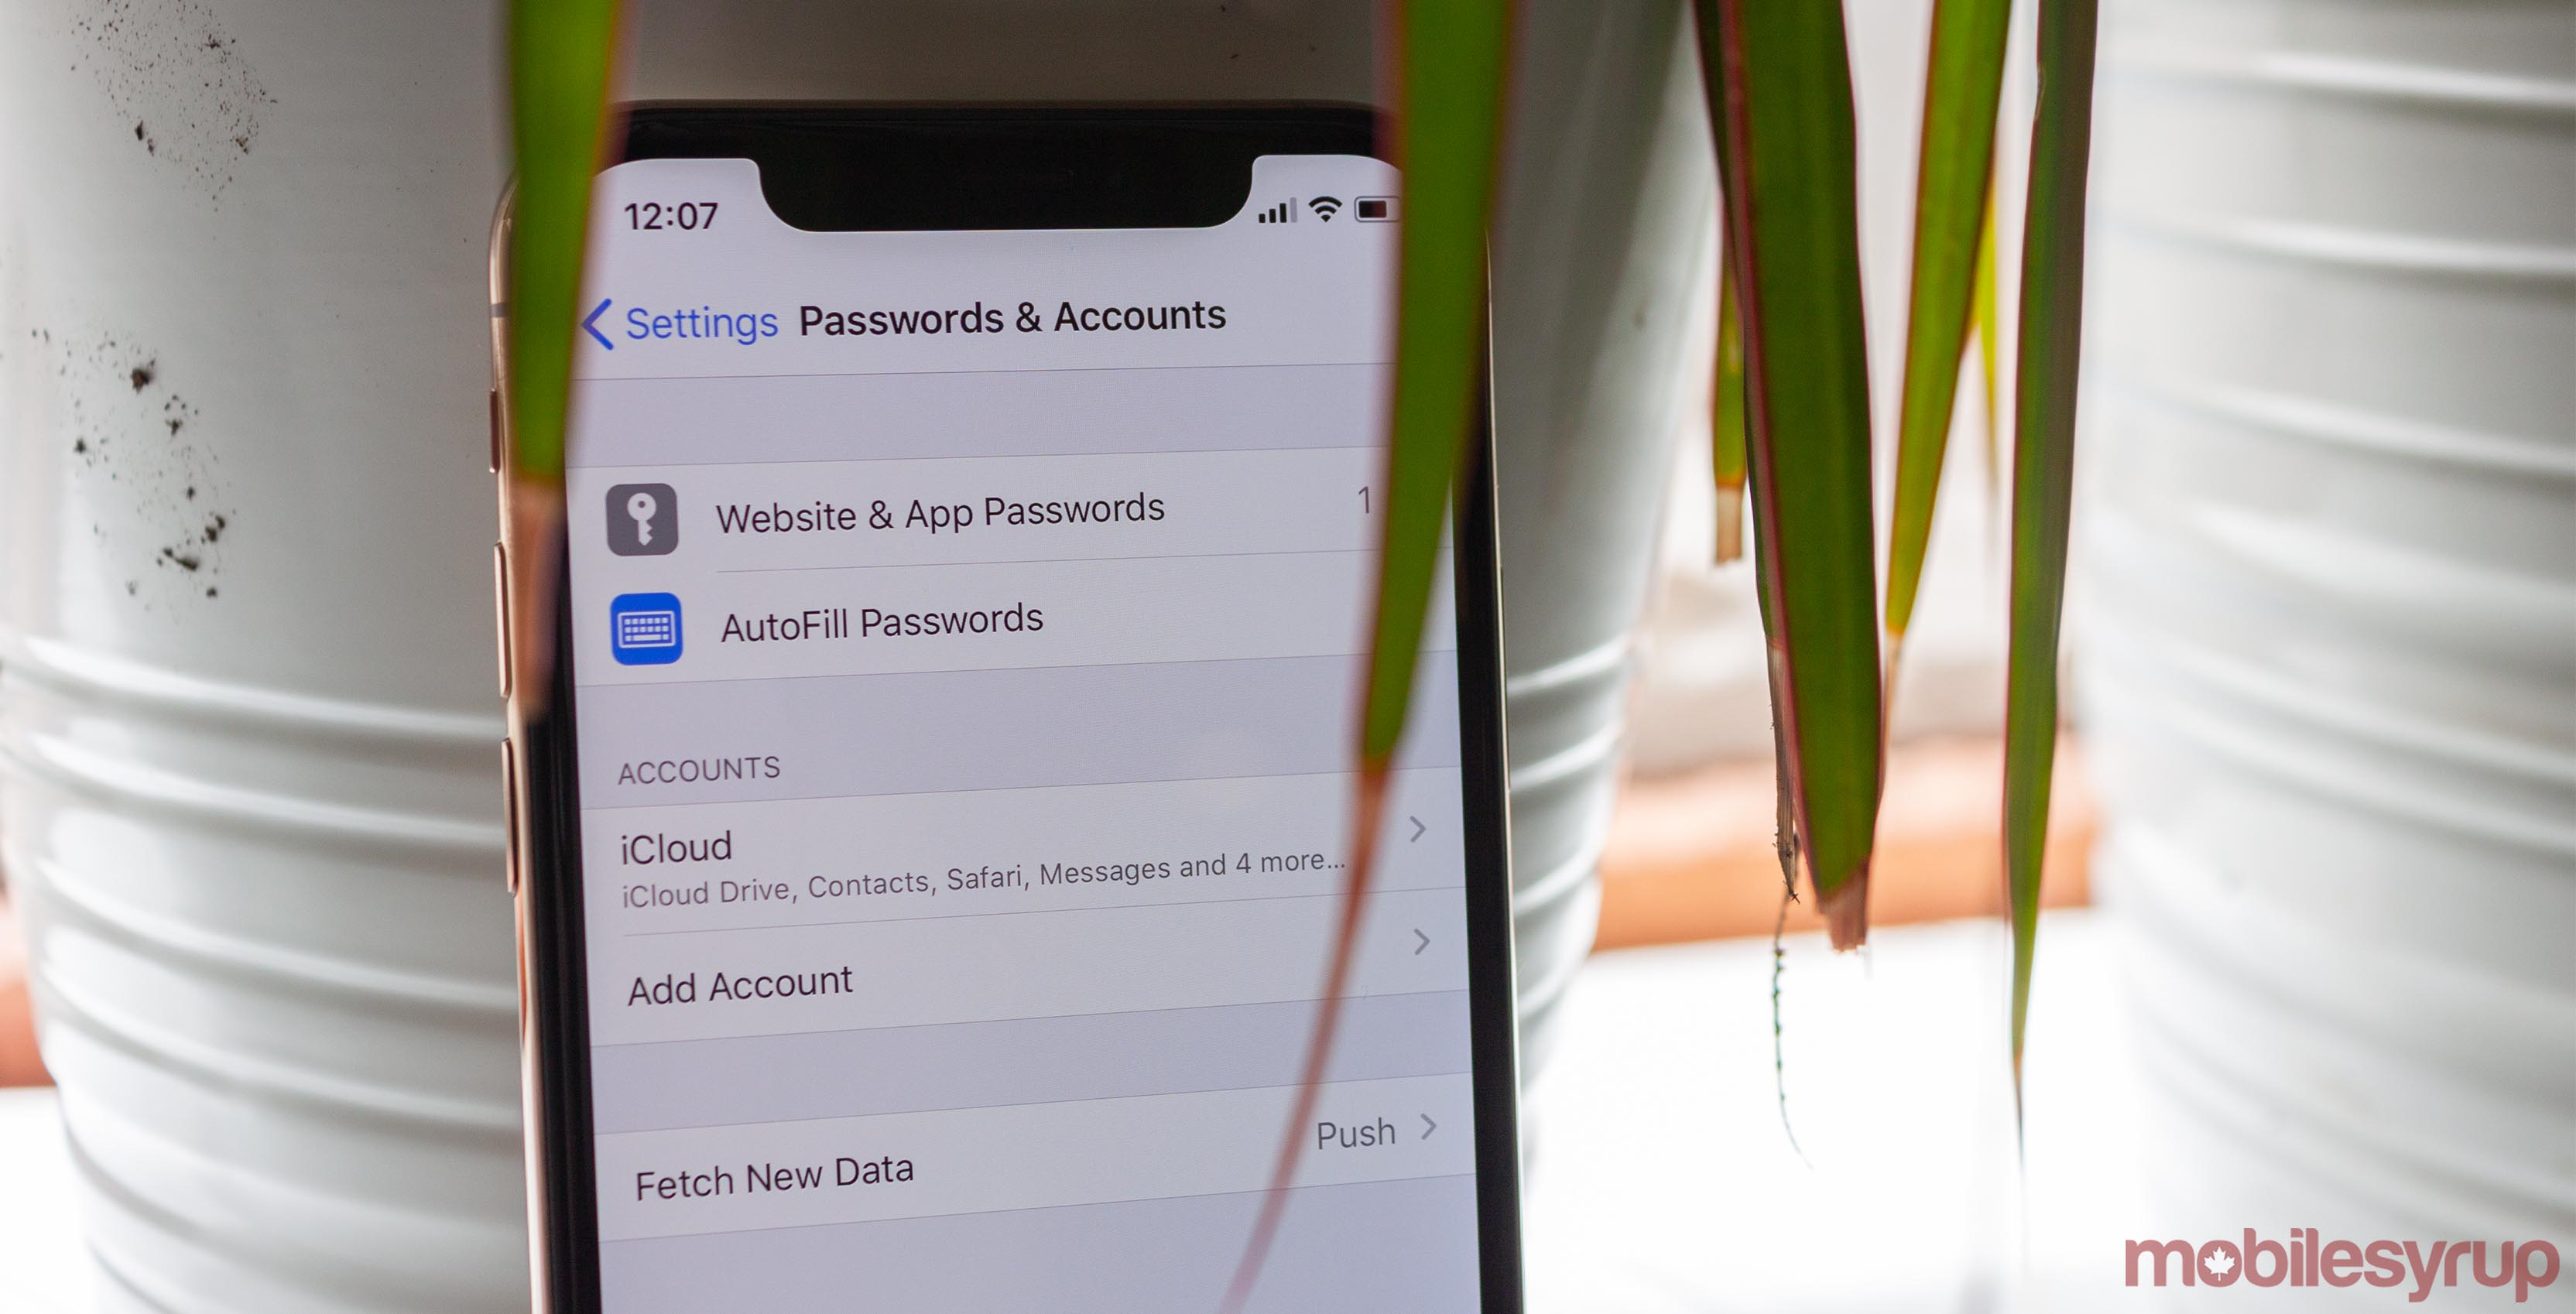 iOS 13 beta bug grants unauthenticated access to saved passwords